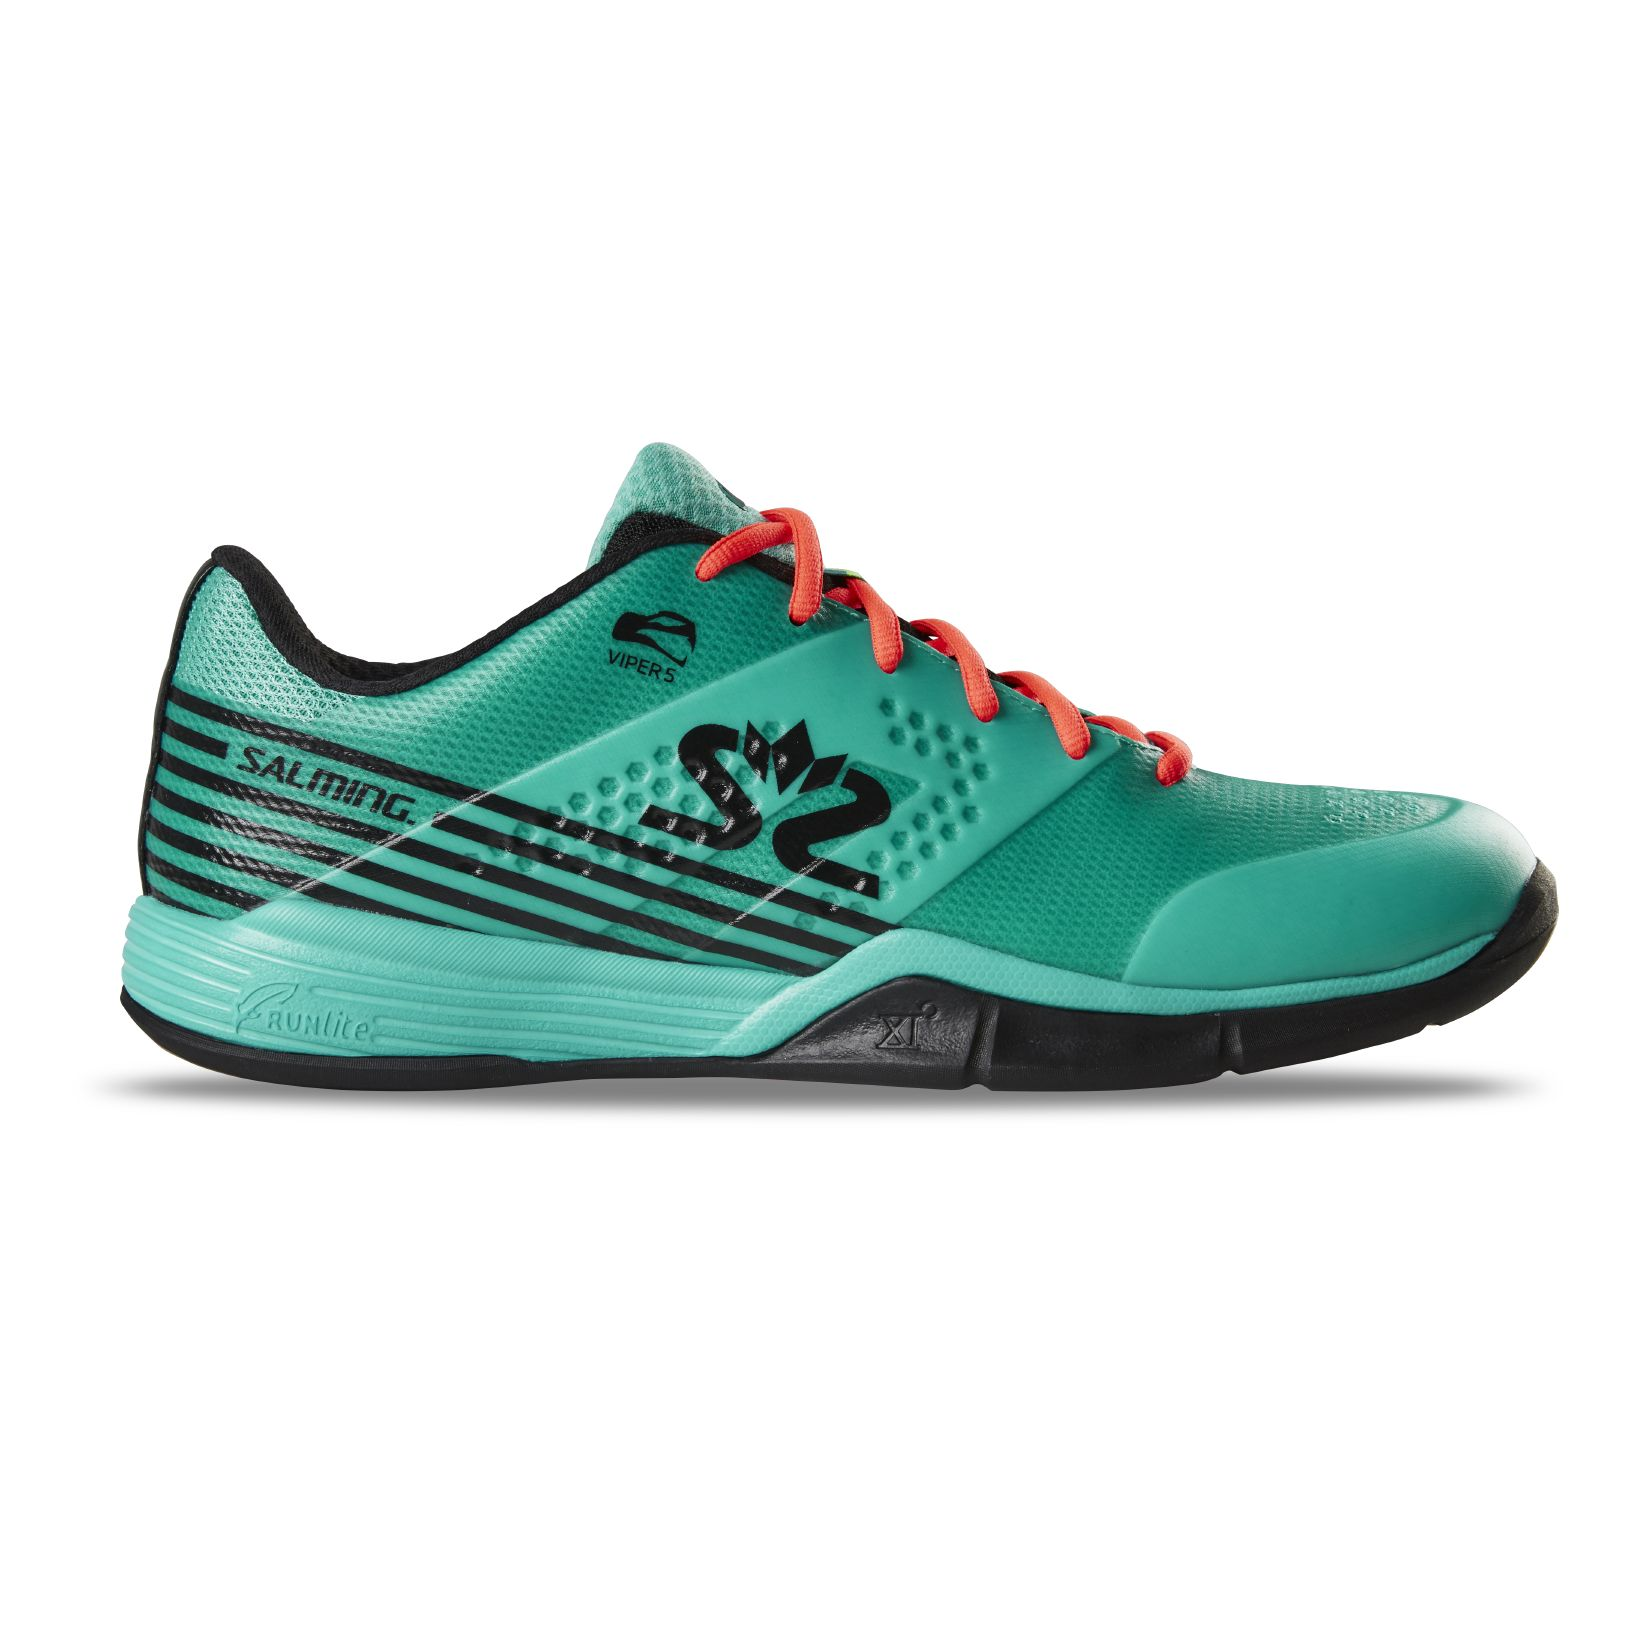 Salming Viper 5 Shoe Men Turquoise/Black 11 UK - 46 2/3 EUR - 30 cm